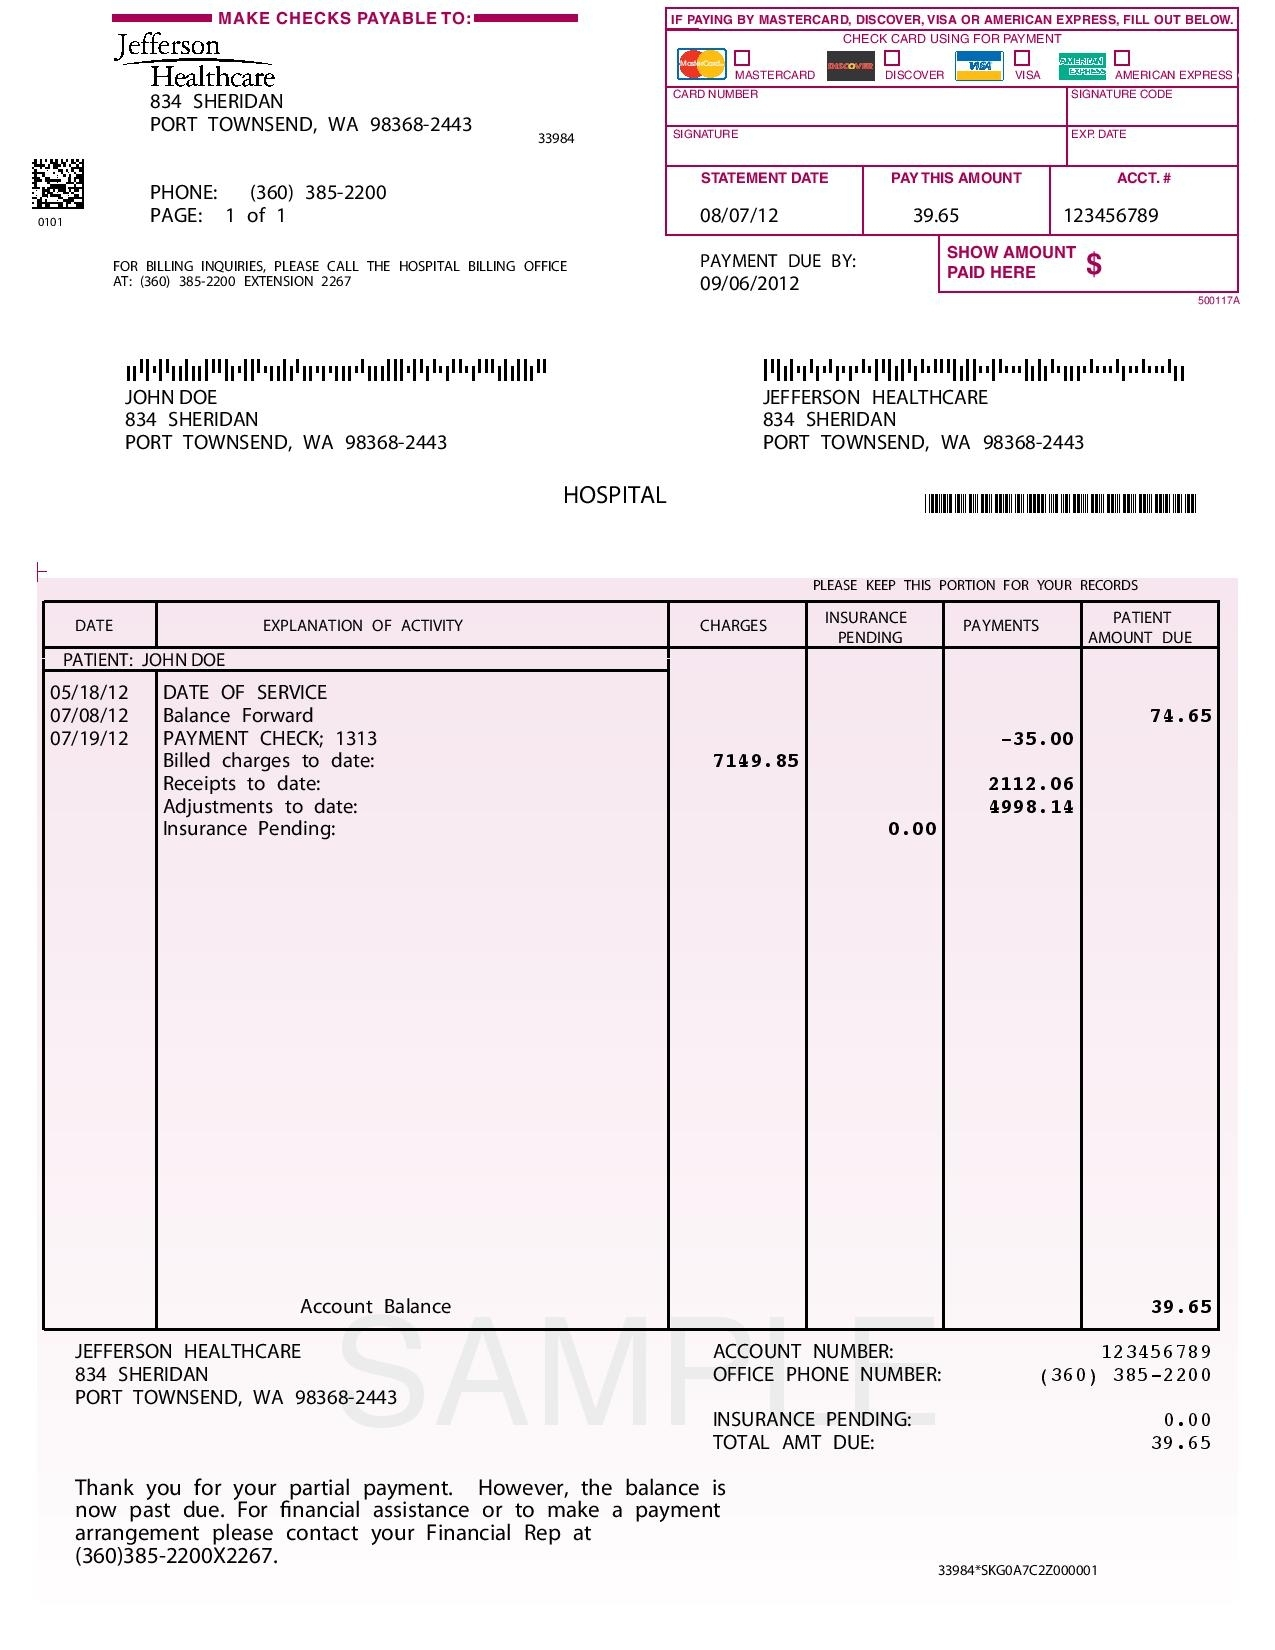 hospital invoice sample fake hospital bill template ipralatam 1275 X 1650